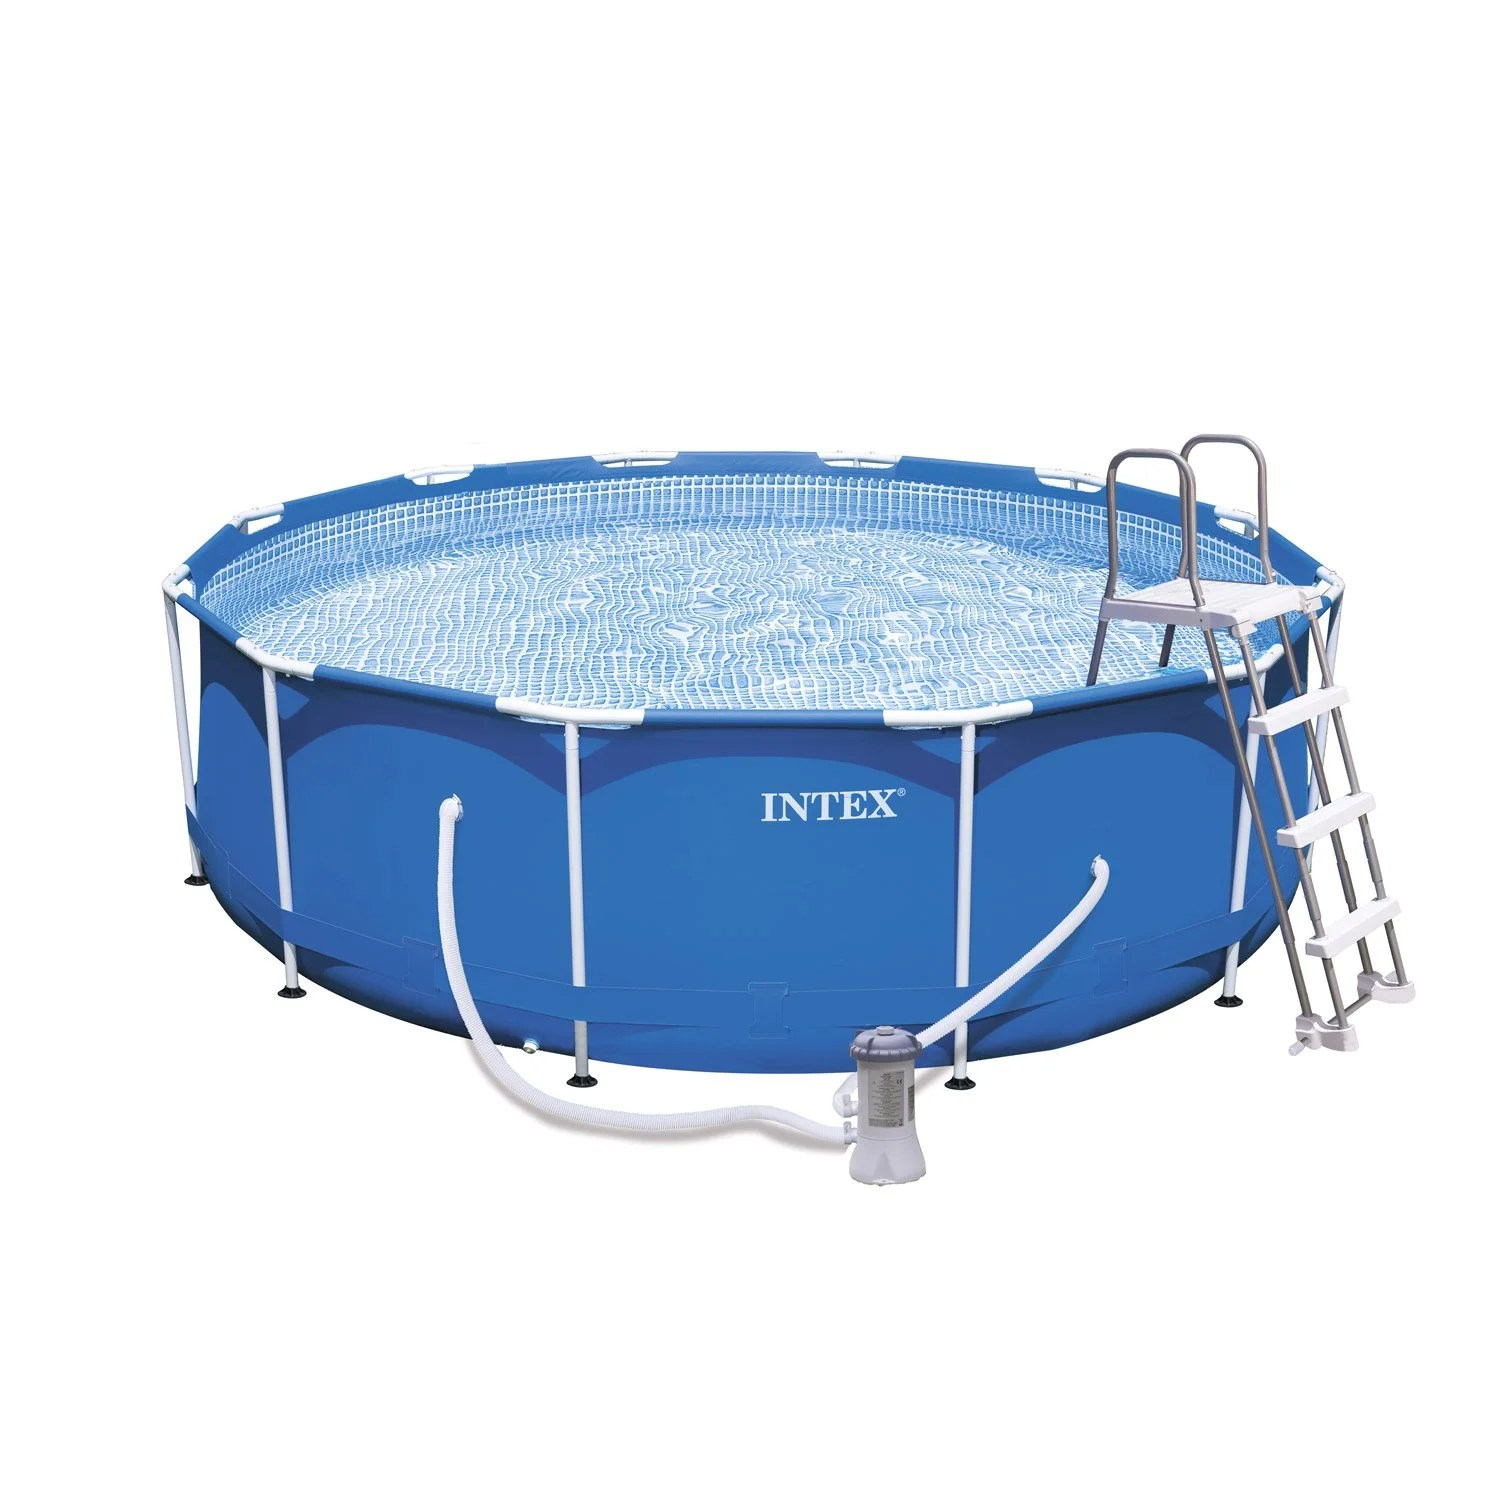 Piscine Tubulaire Castorama Piscine Hors Sol Autoportante Tubulaire Suppression Intex